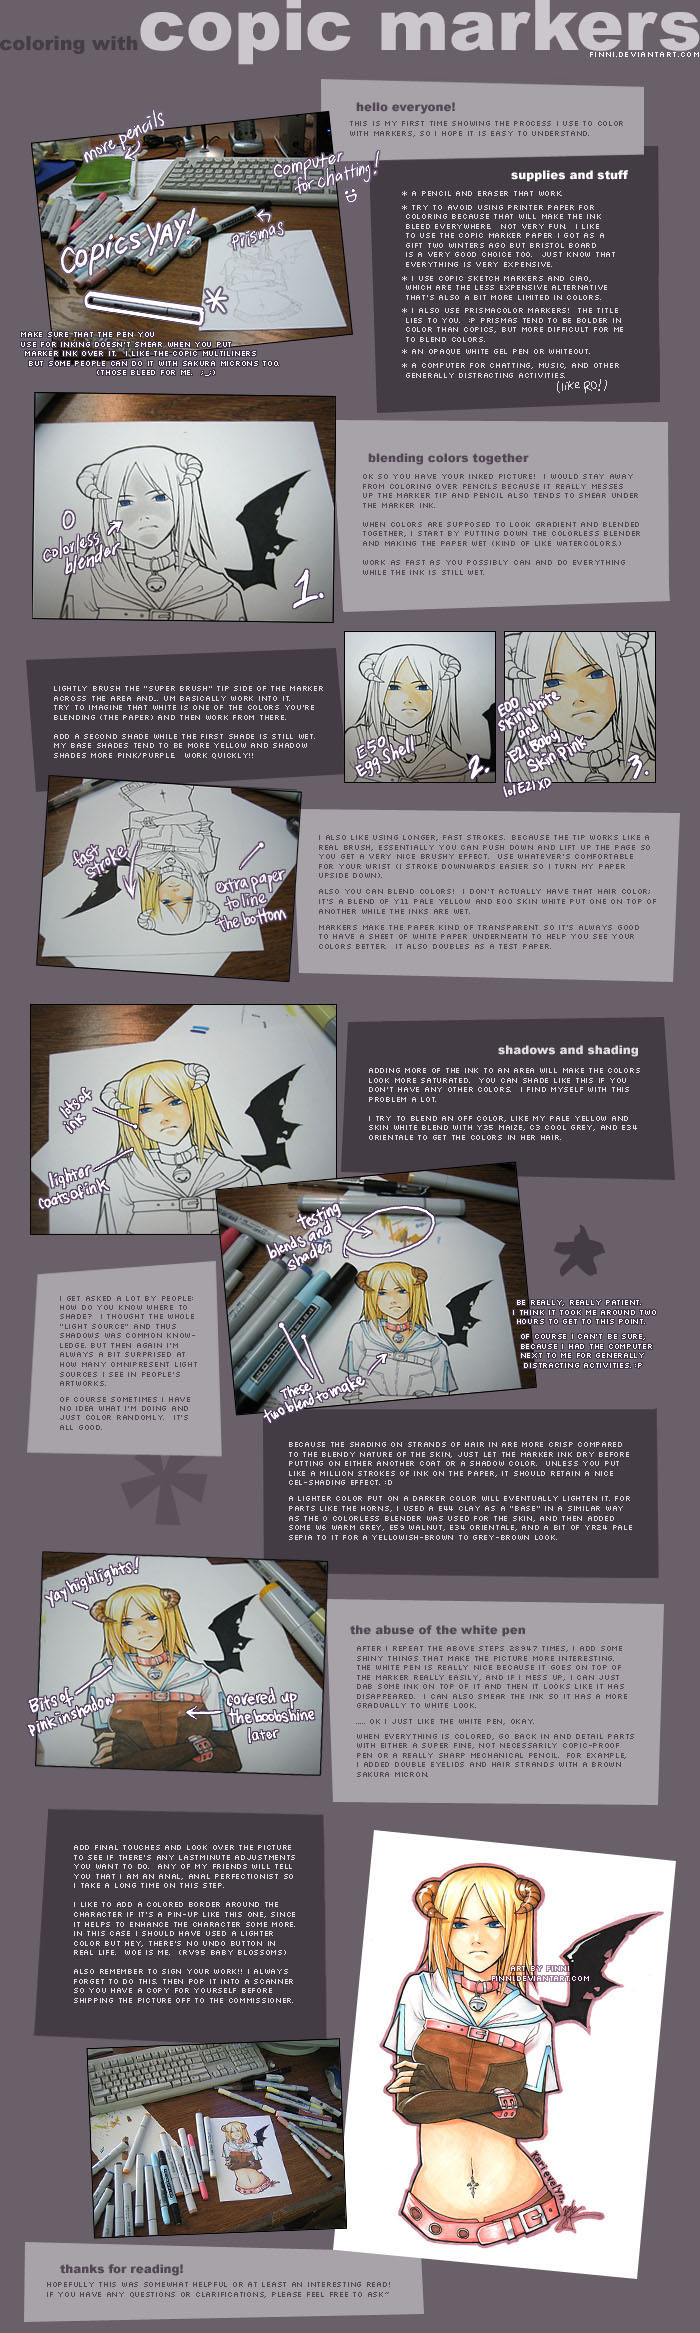 Copic Marker Tutorial by *finni on deviantART